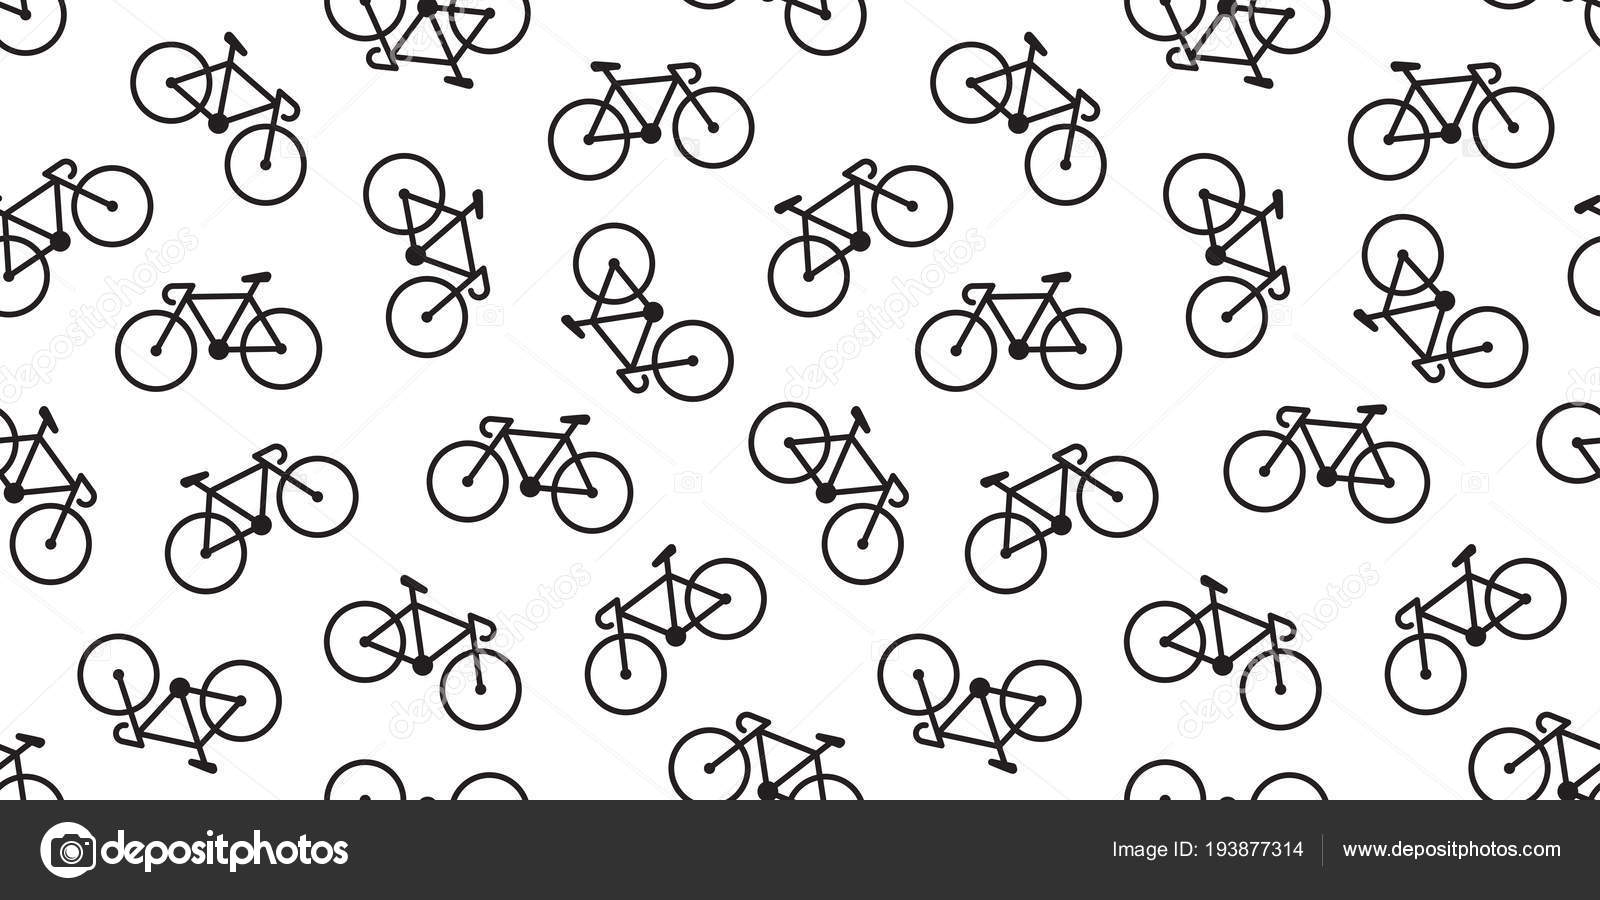 Bicycle Wallpaper Bicycle Seamless Pattern Vector Cycling Isolated Background Wallpaper Vintage Stock Vector C Cnuisin 193877314